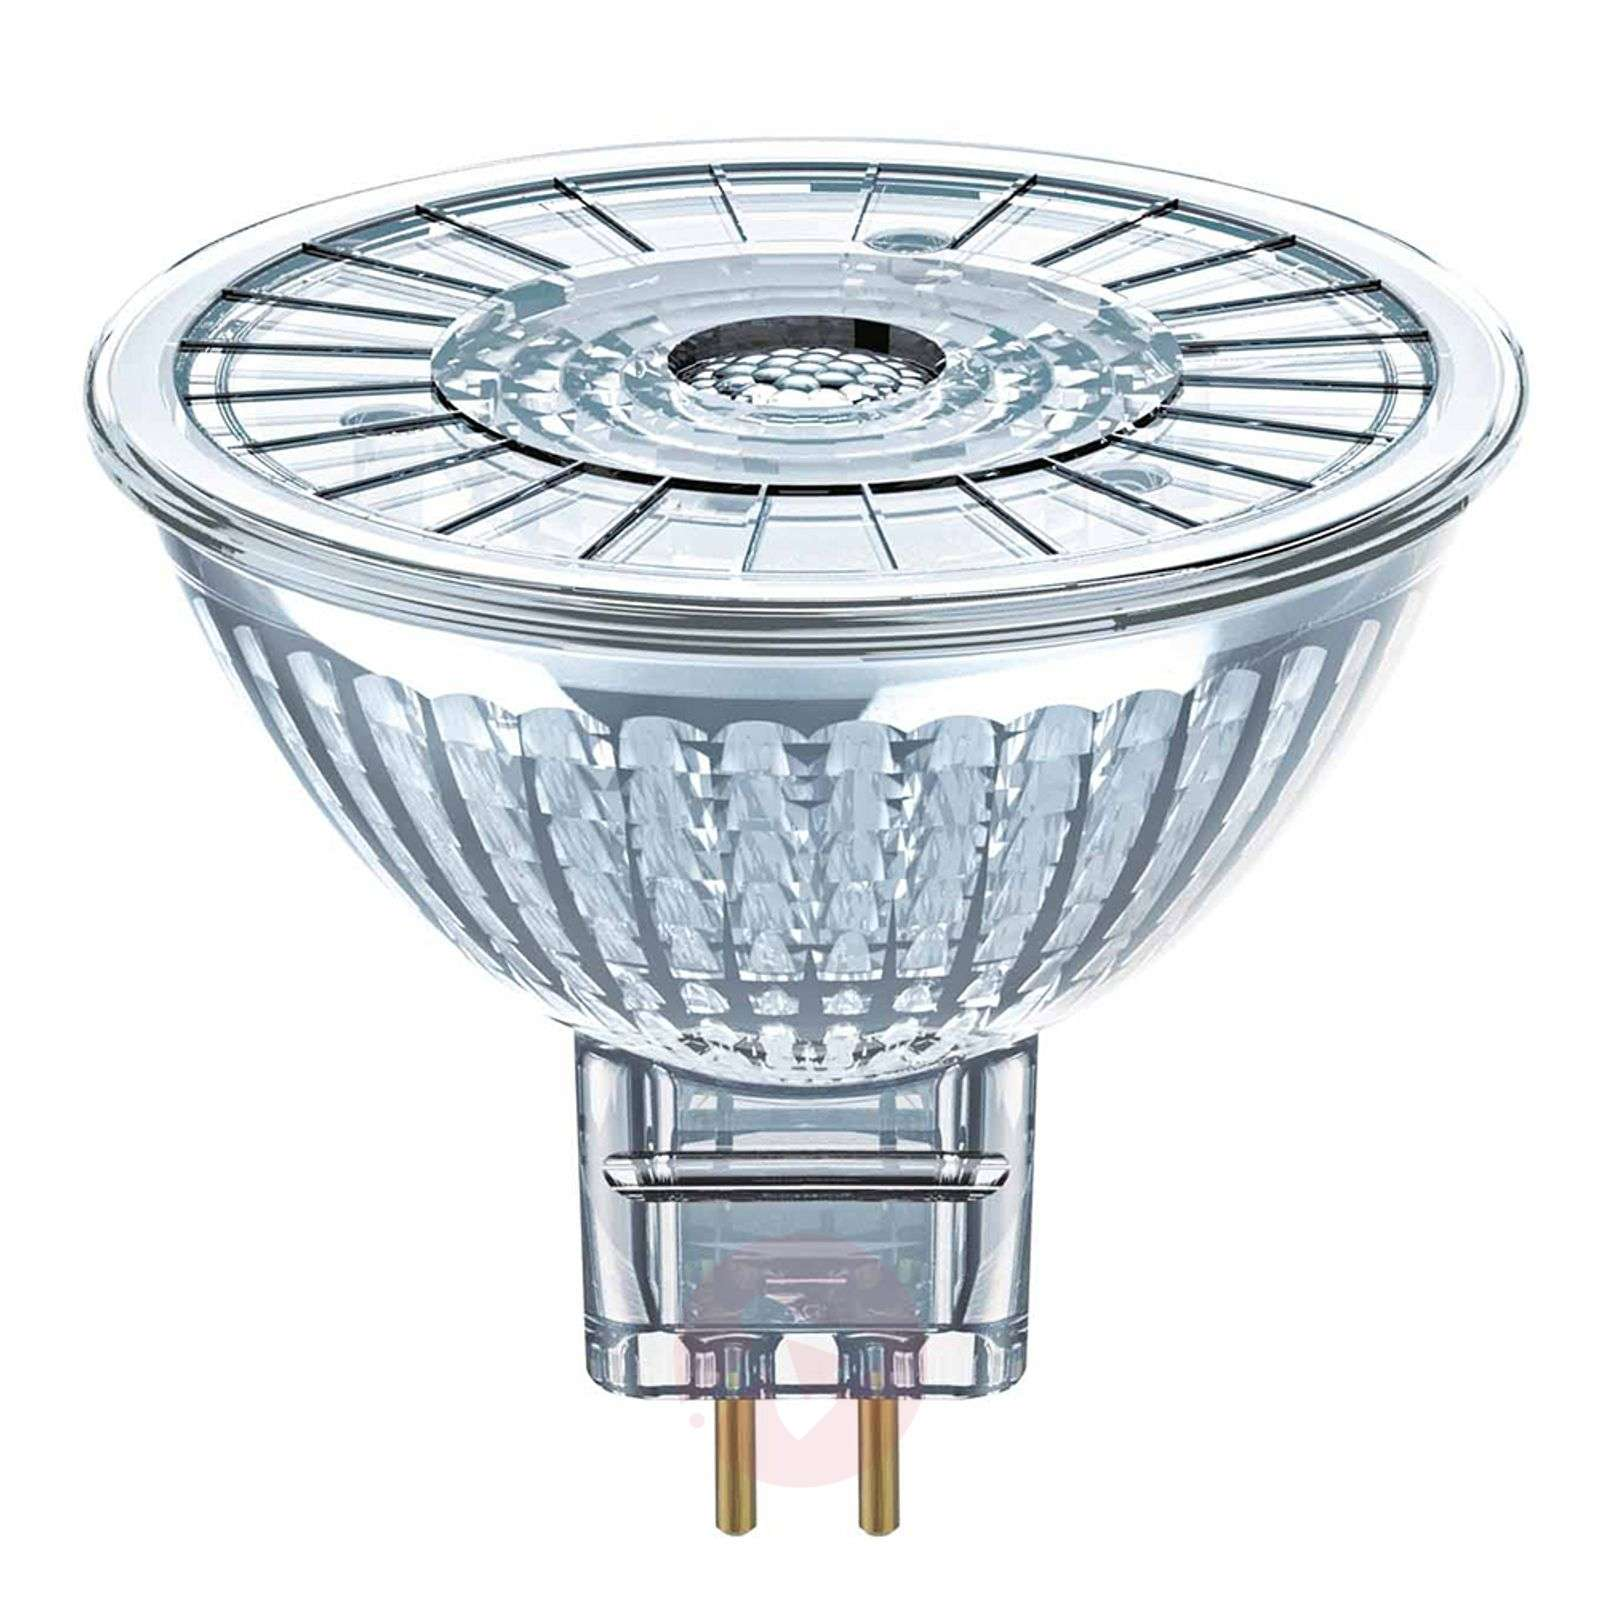 Réflecteur LED GU5,3 5 W Superstar 36degree blc neutre-7260872-01